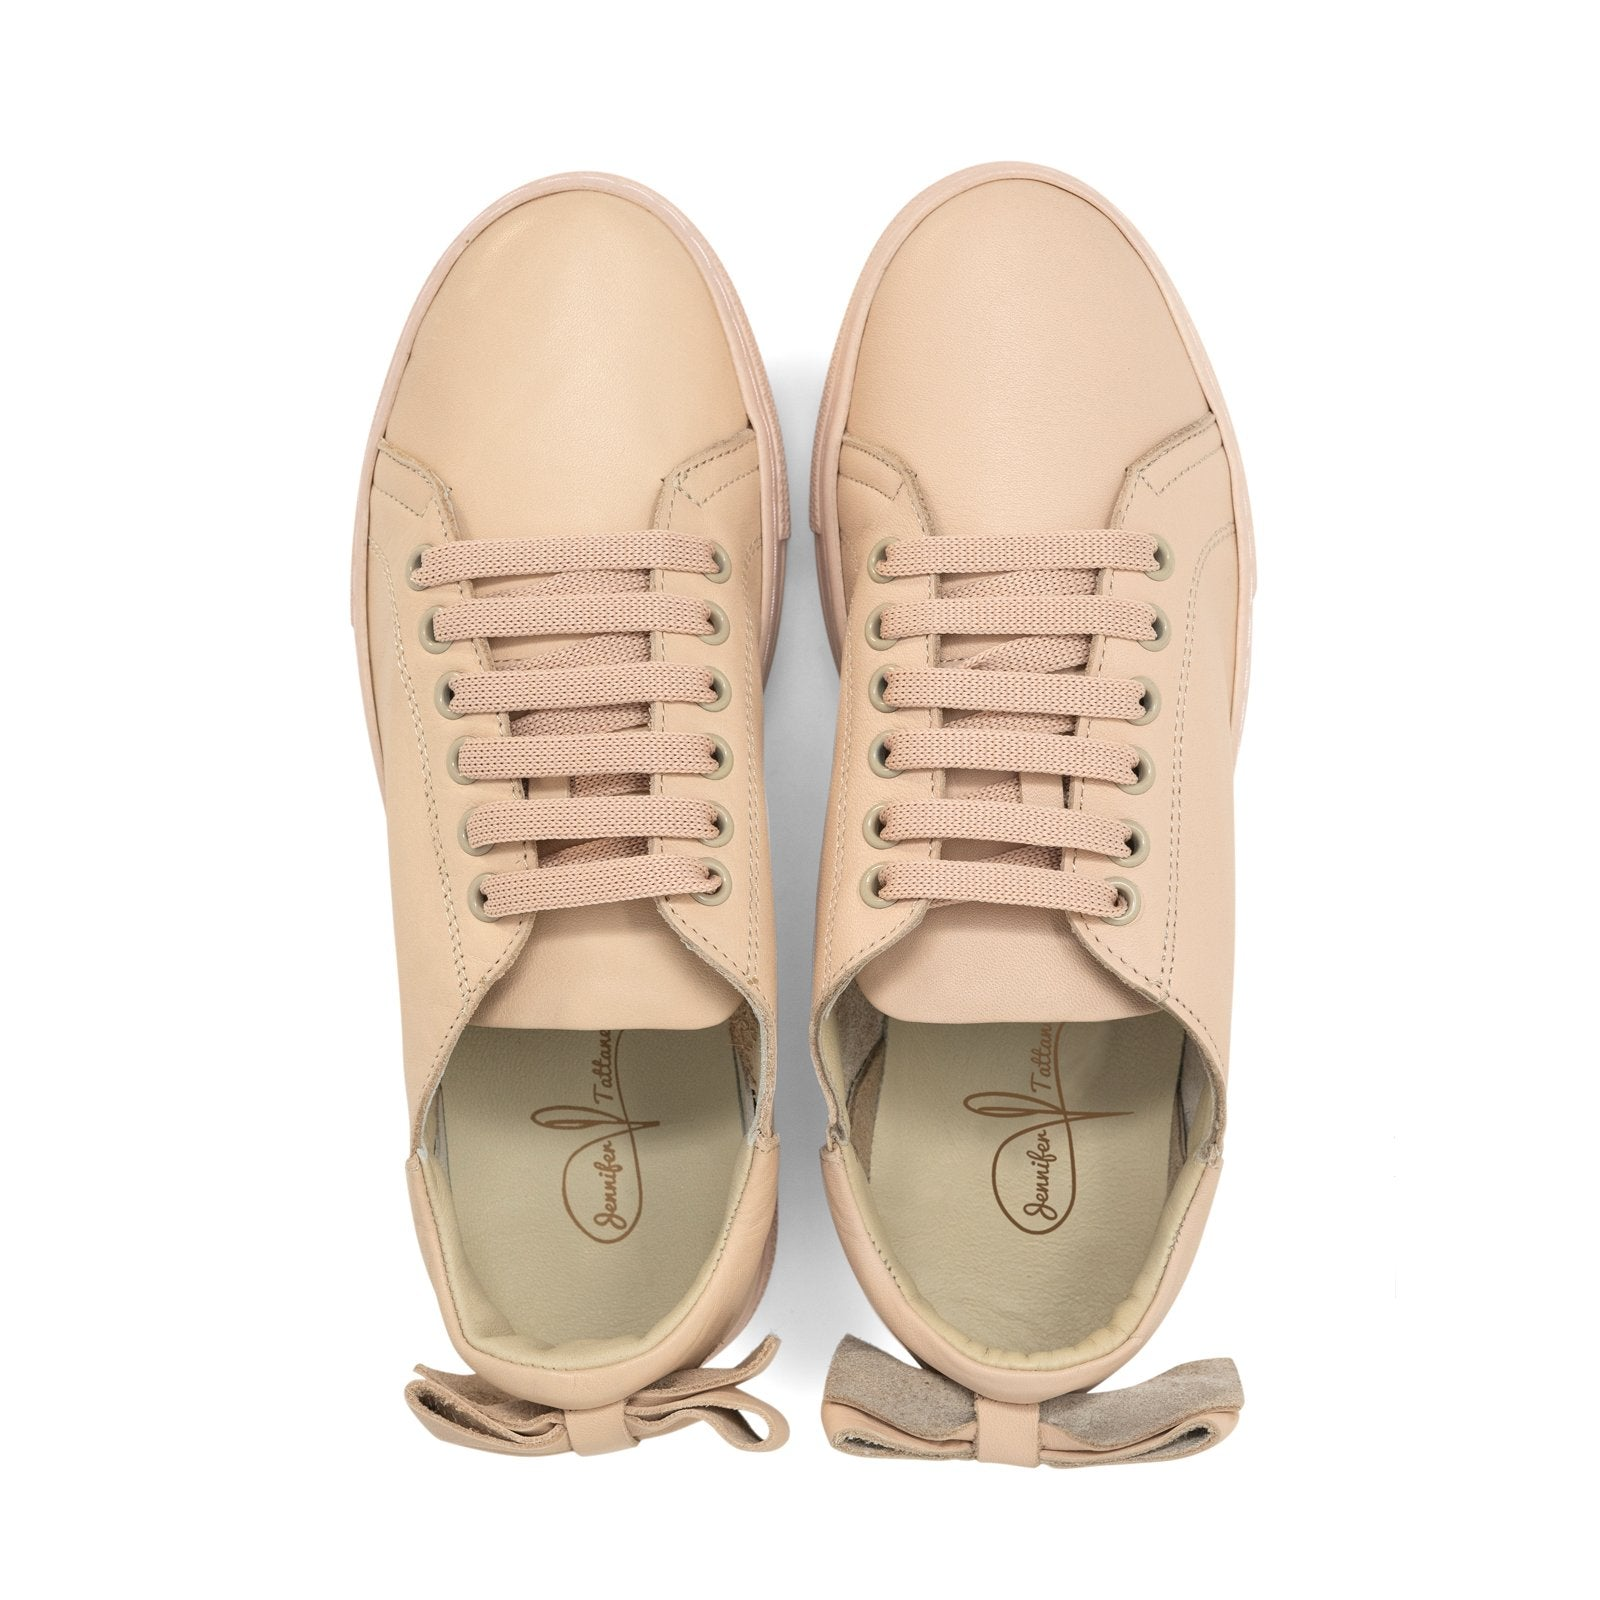 Women Sneakers - New Spring Summer 2020 Collection RINTL9070